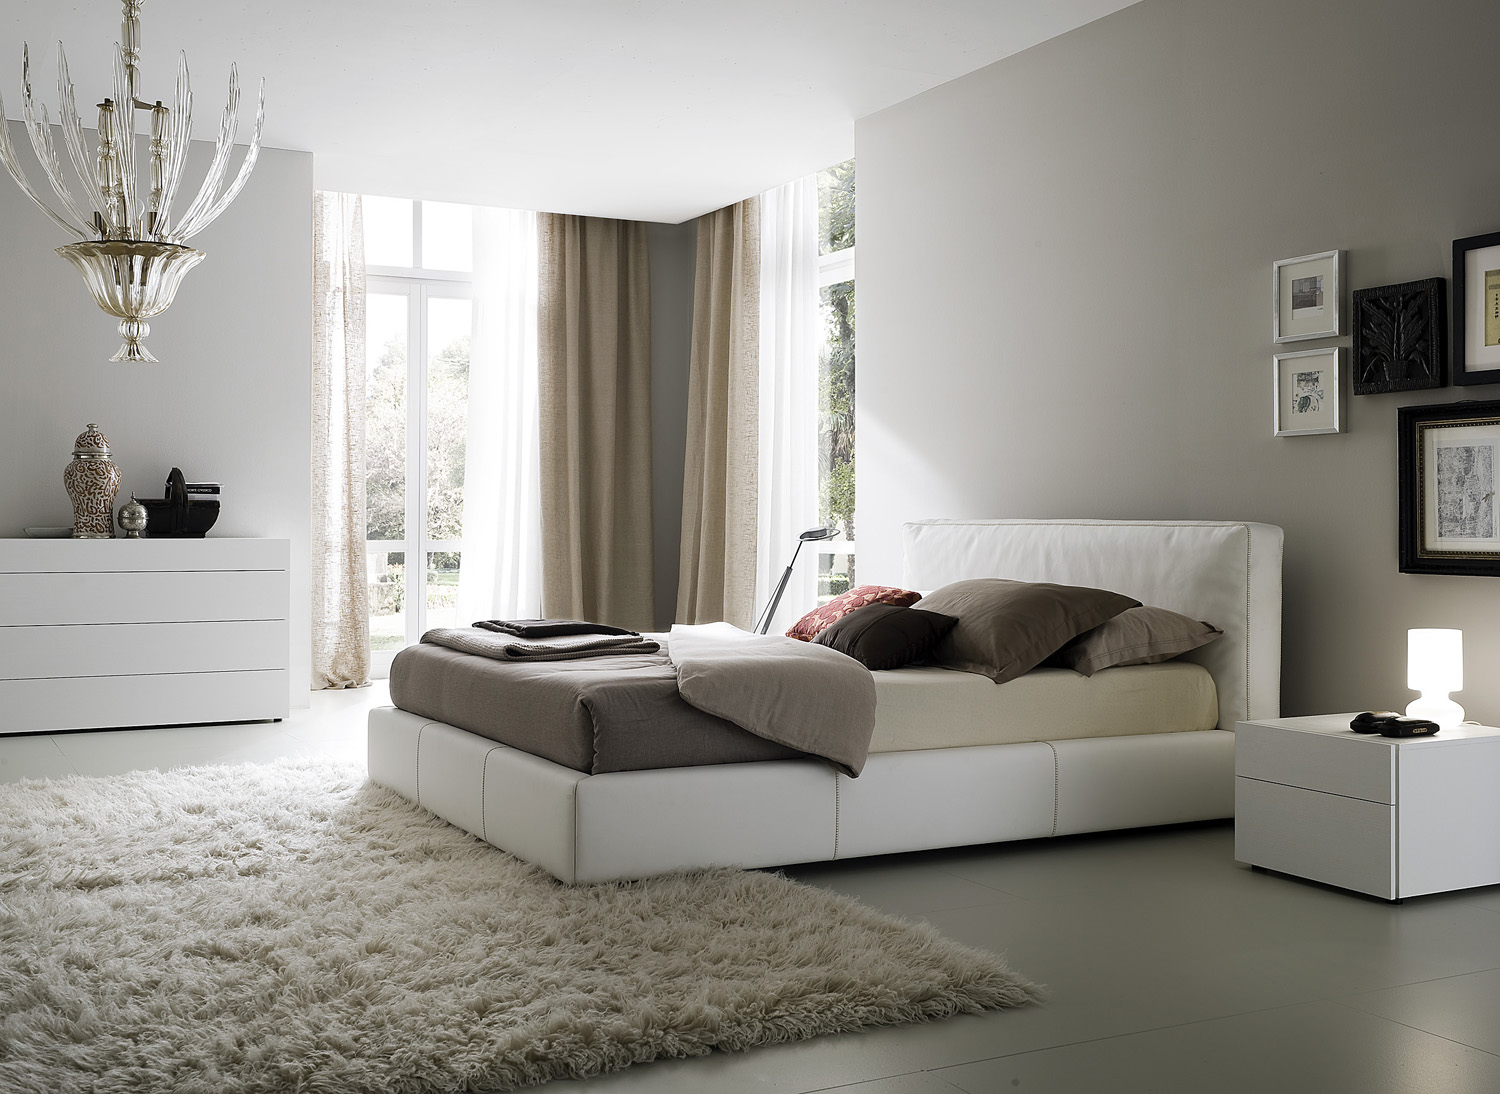 Bedroom decorating ideas from evinco for Ideas to decorate your bedroom